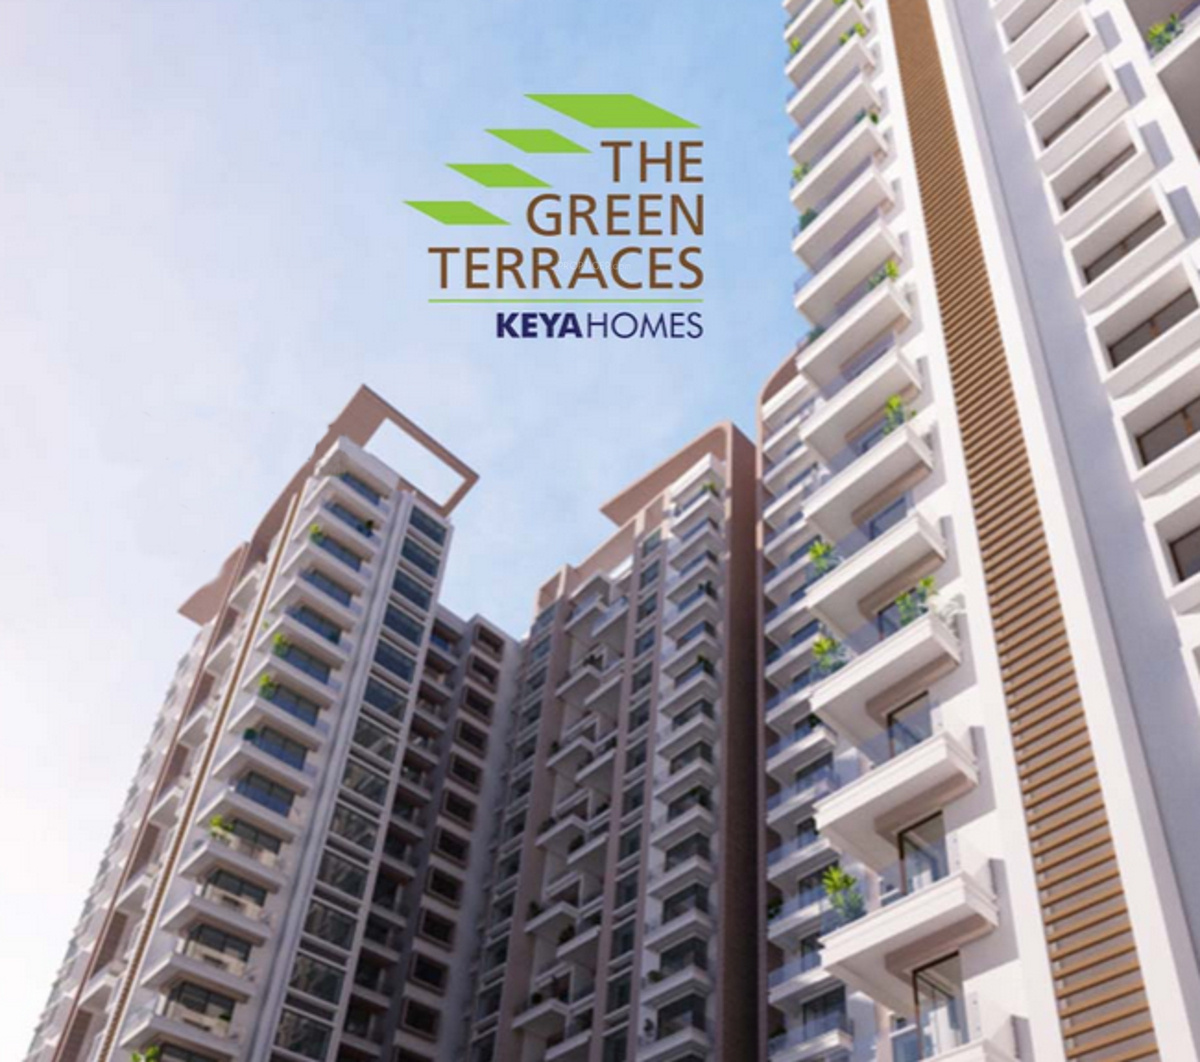 The Terraces Apartments: 715 Sq Ft 1 BHK 1T Apartment For Sale In Keya Homes The